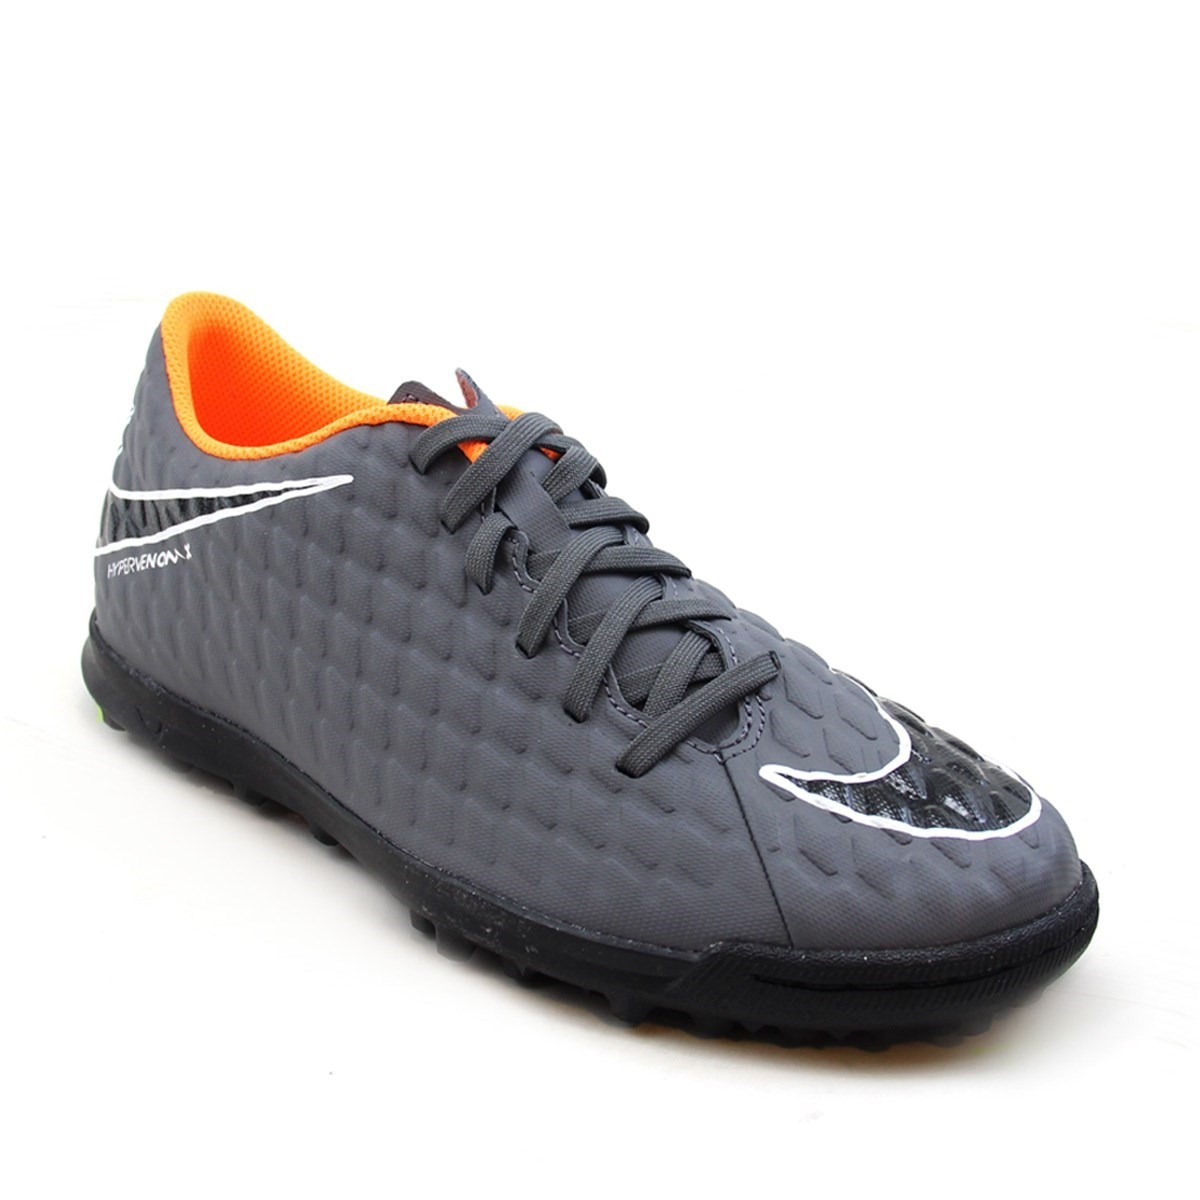 separation shoes a21f3 51107 Botin Nike Hypervenom Phantomx Iii Club Tf